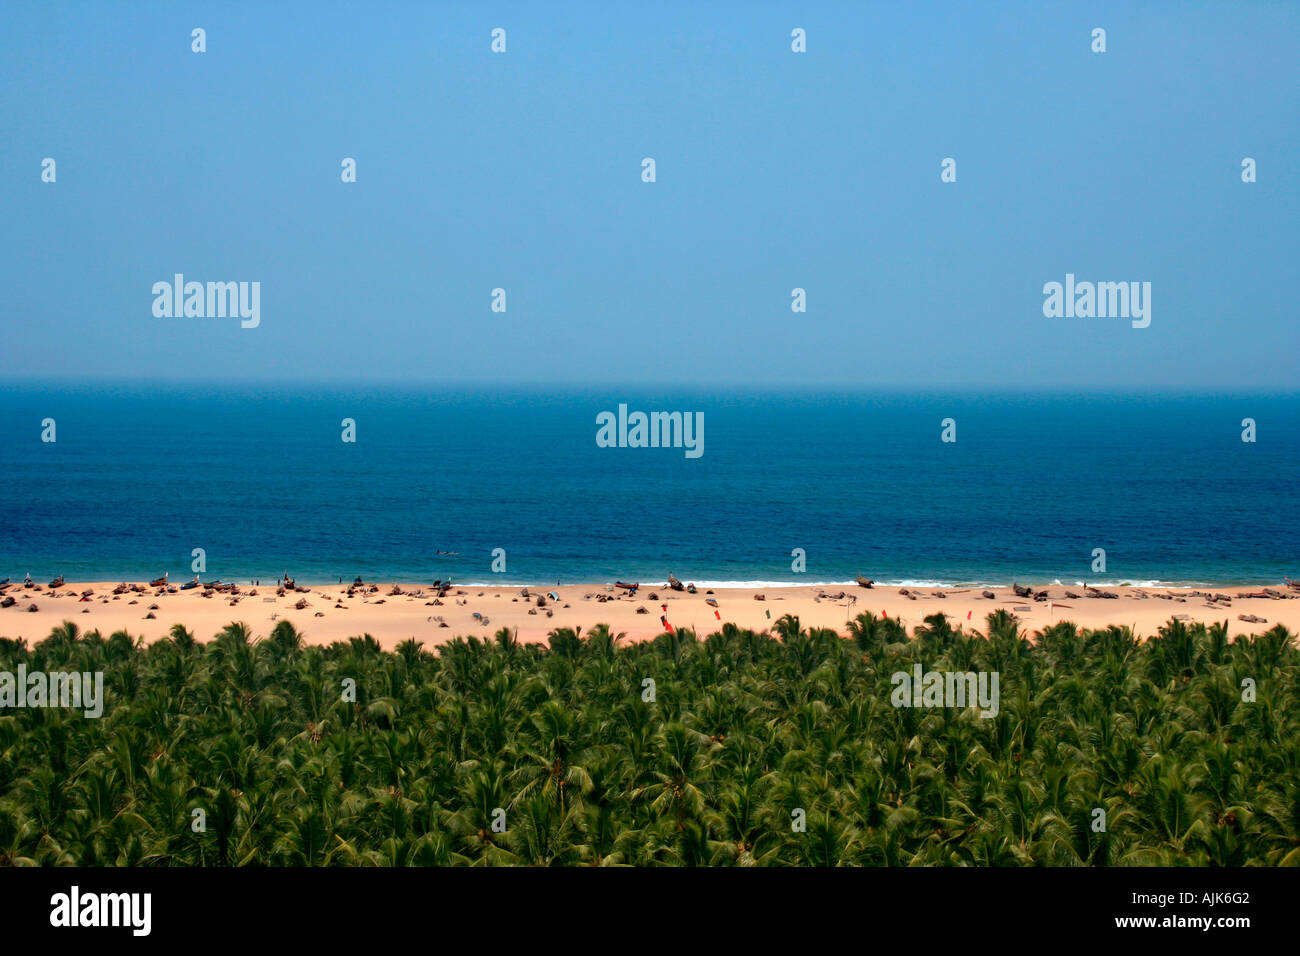 The distant view of a beach at Vizhinjam, Kerala - Stock Image